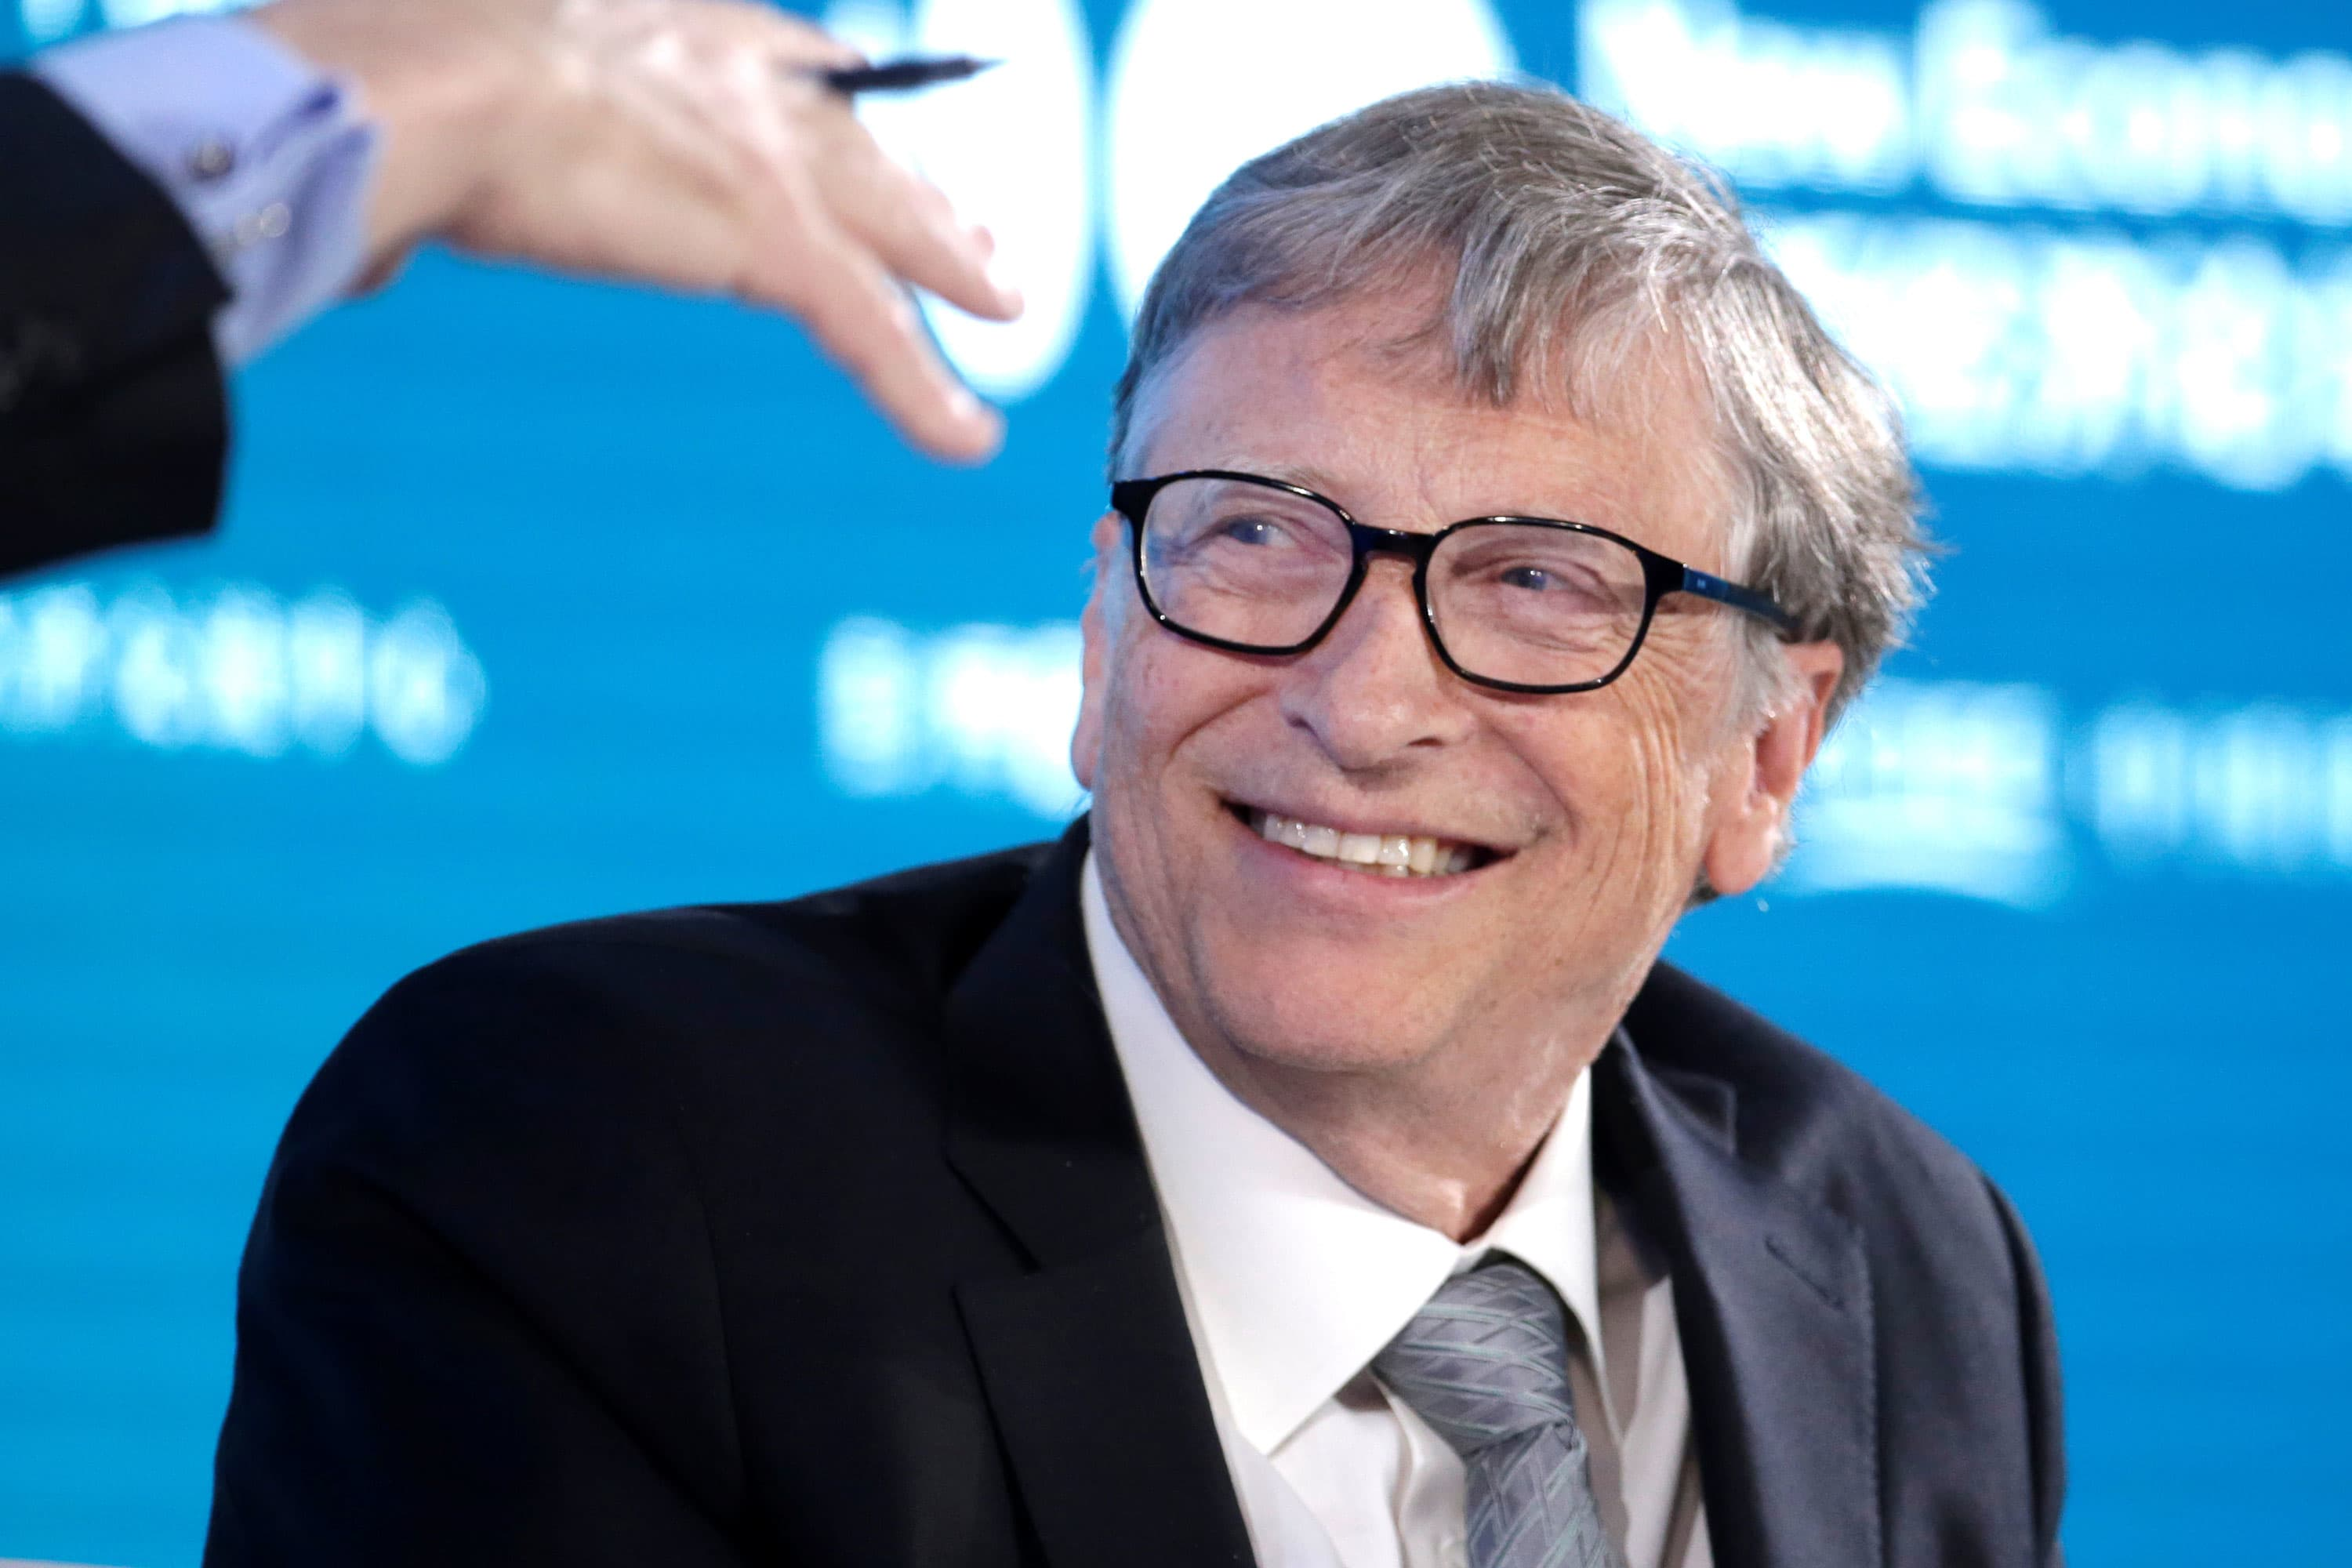 Childrens Biography Books Biography for Kids 9-12 Why Is Bill Gates So Successful